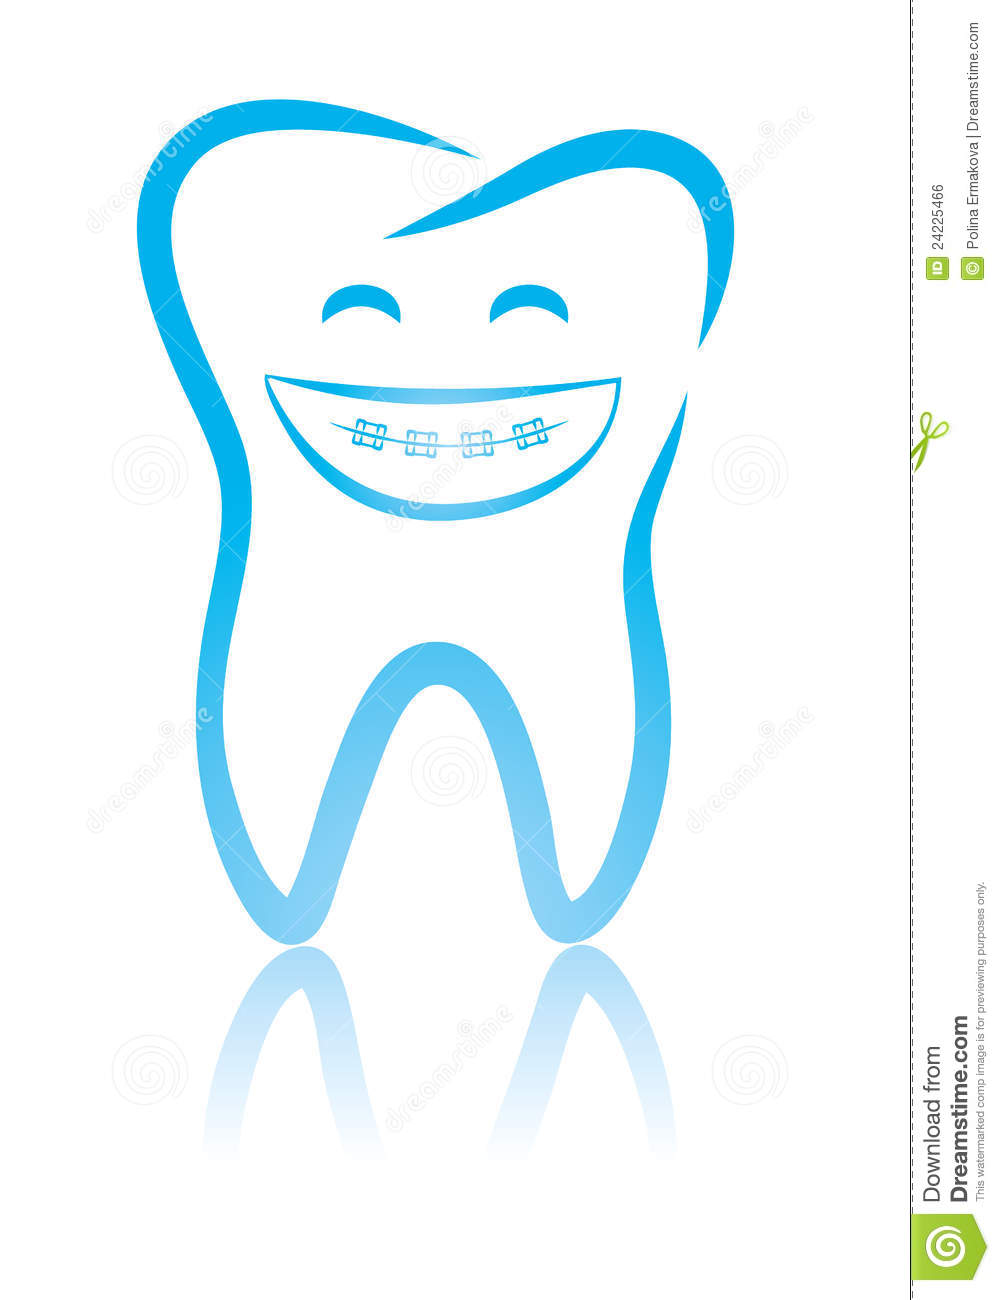 ... Dental Tooth With Braces Royalty Free Stock Image - Image: 24225466